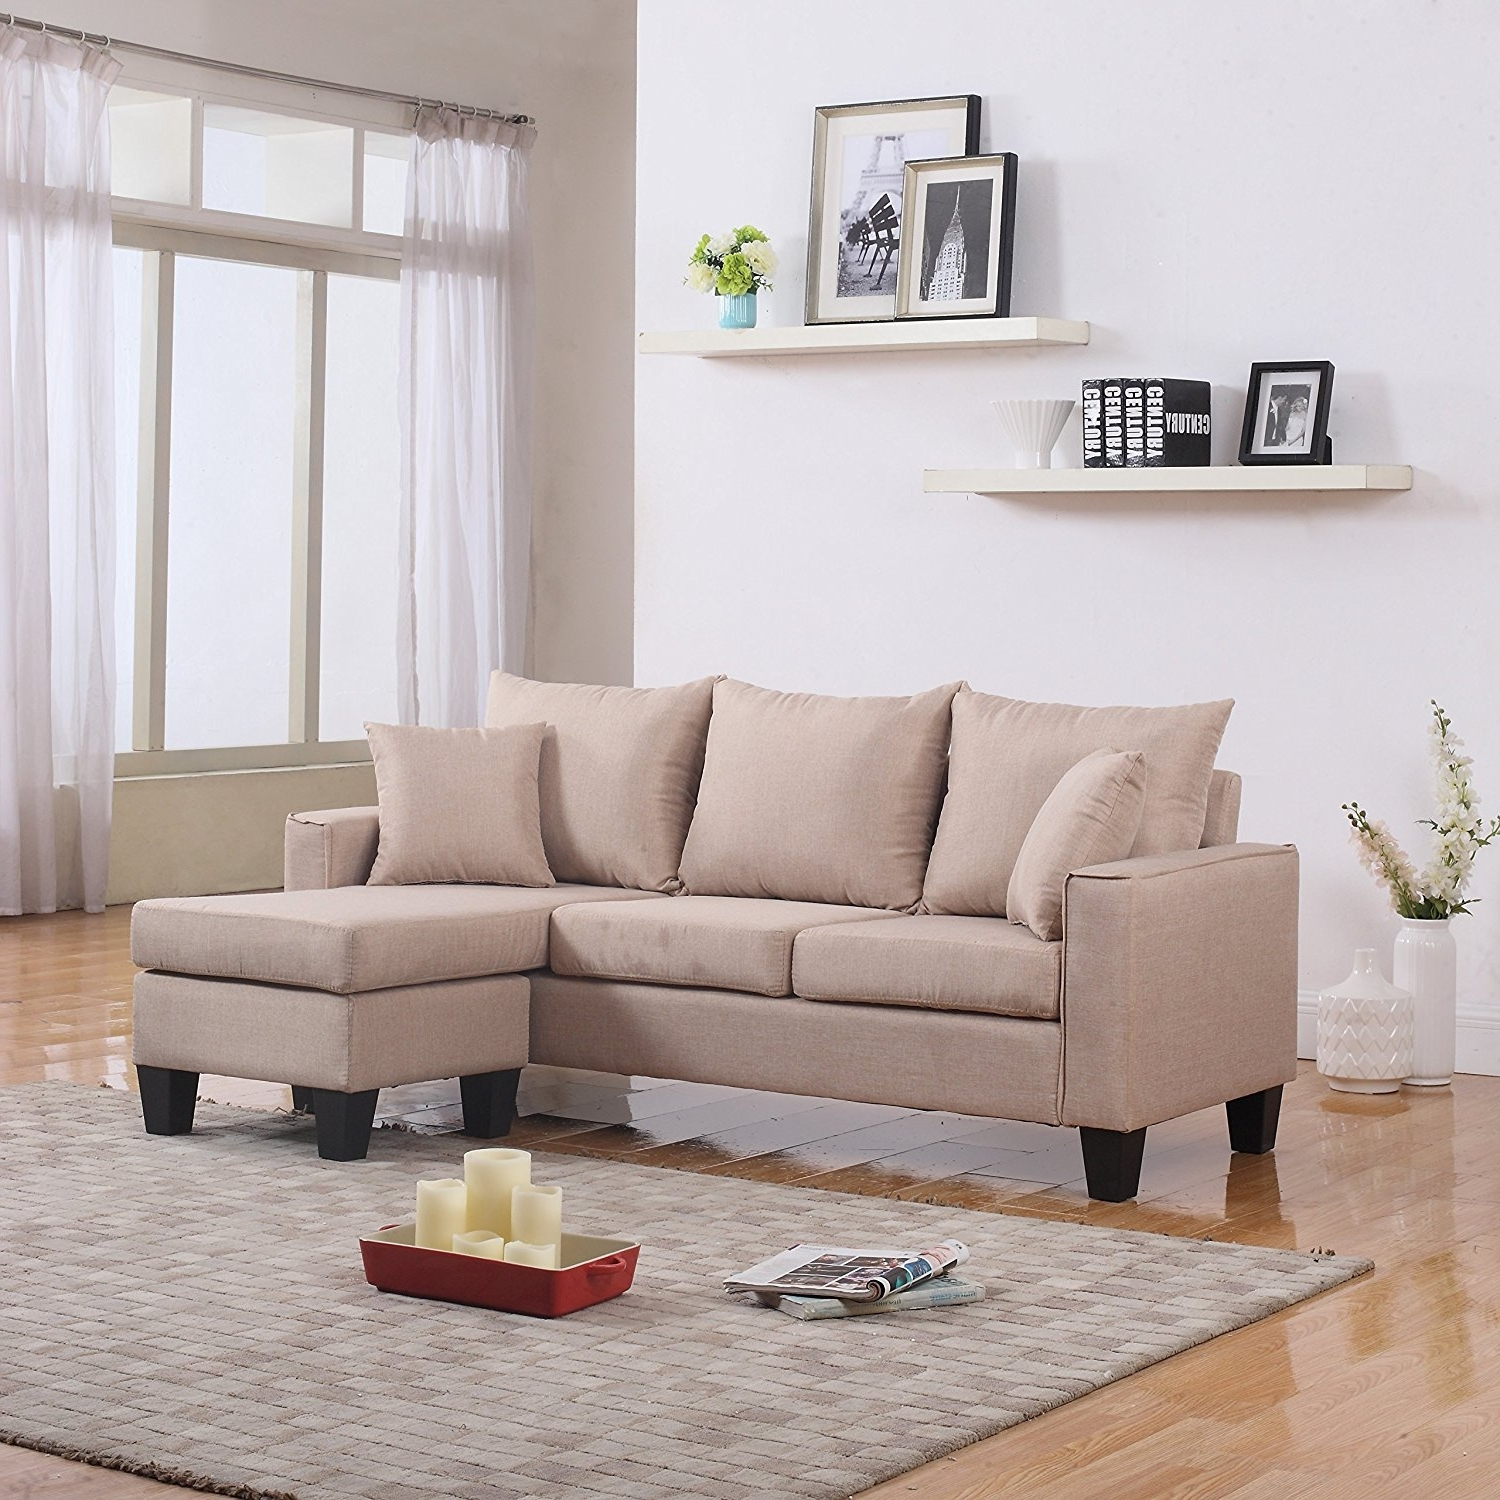 Famous Ethan Allen Furniture Small Sectional Sofas For Small Spaces Regarding Inexpensive Sectional Sofas For Small Spaces (View 14 of 20)